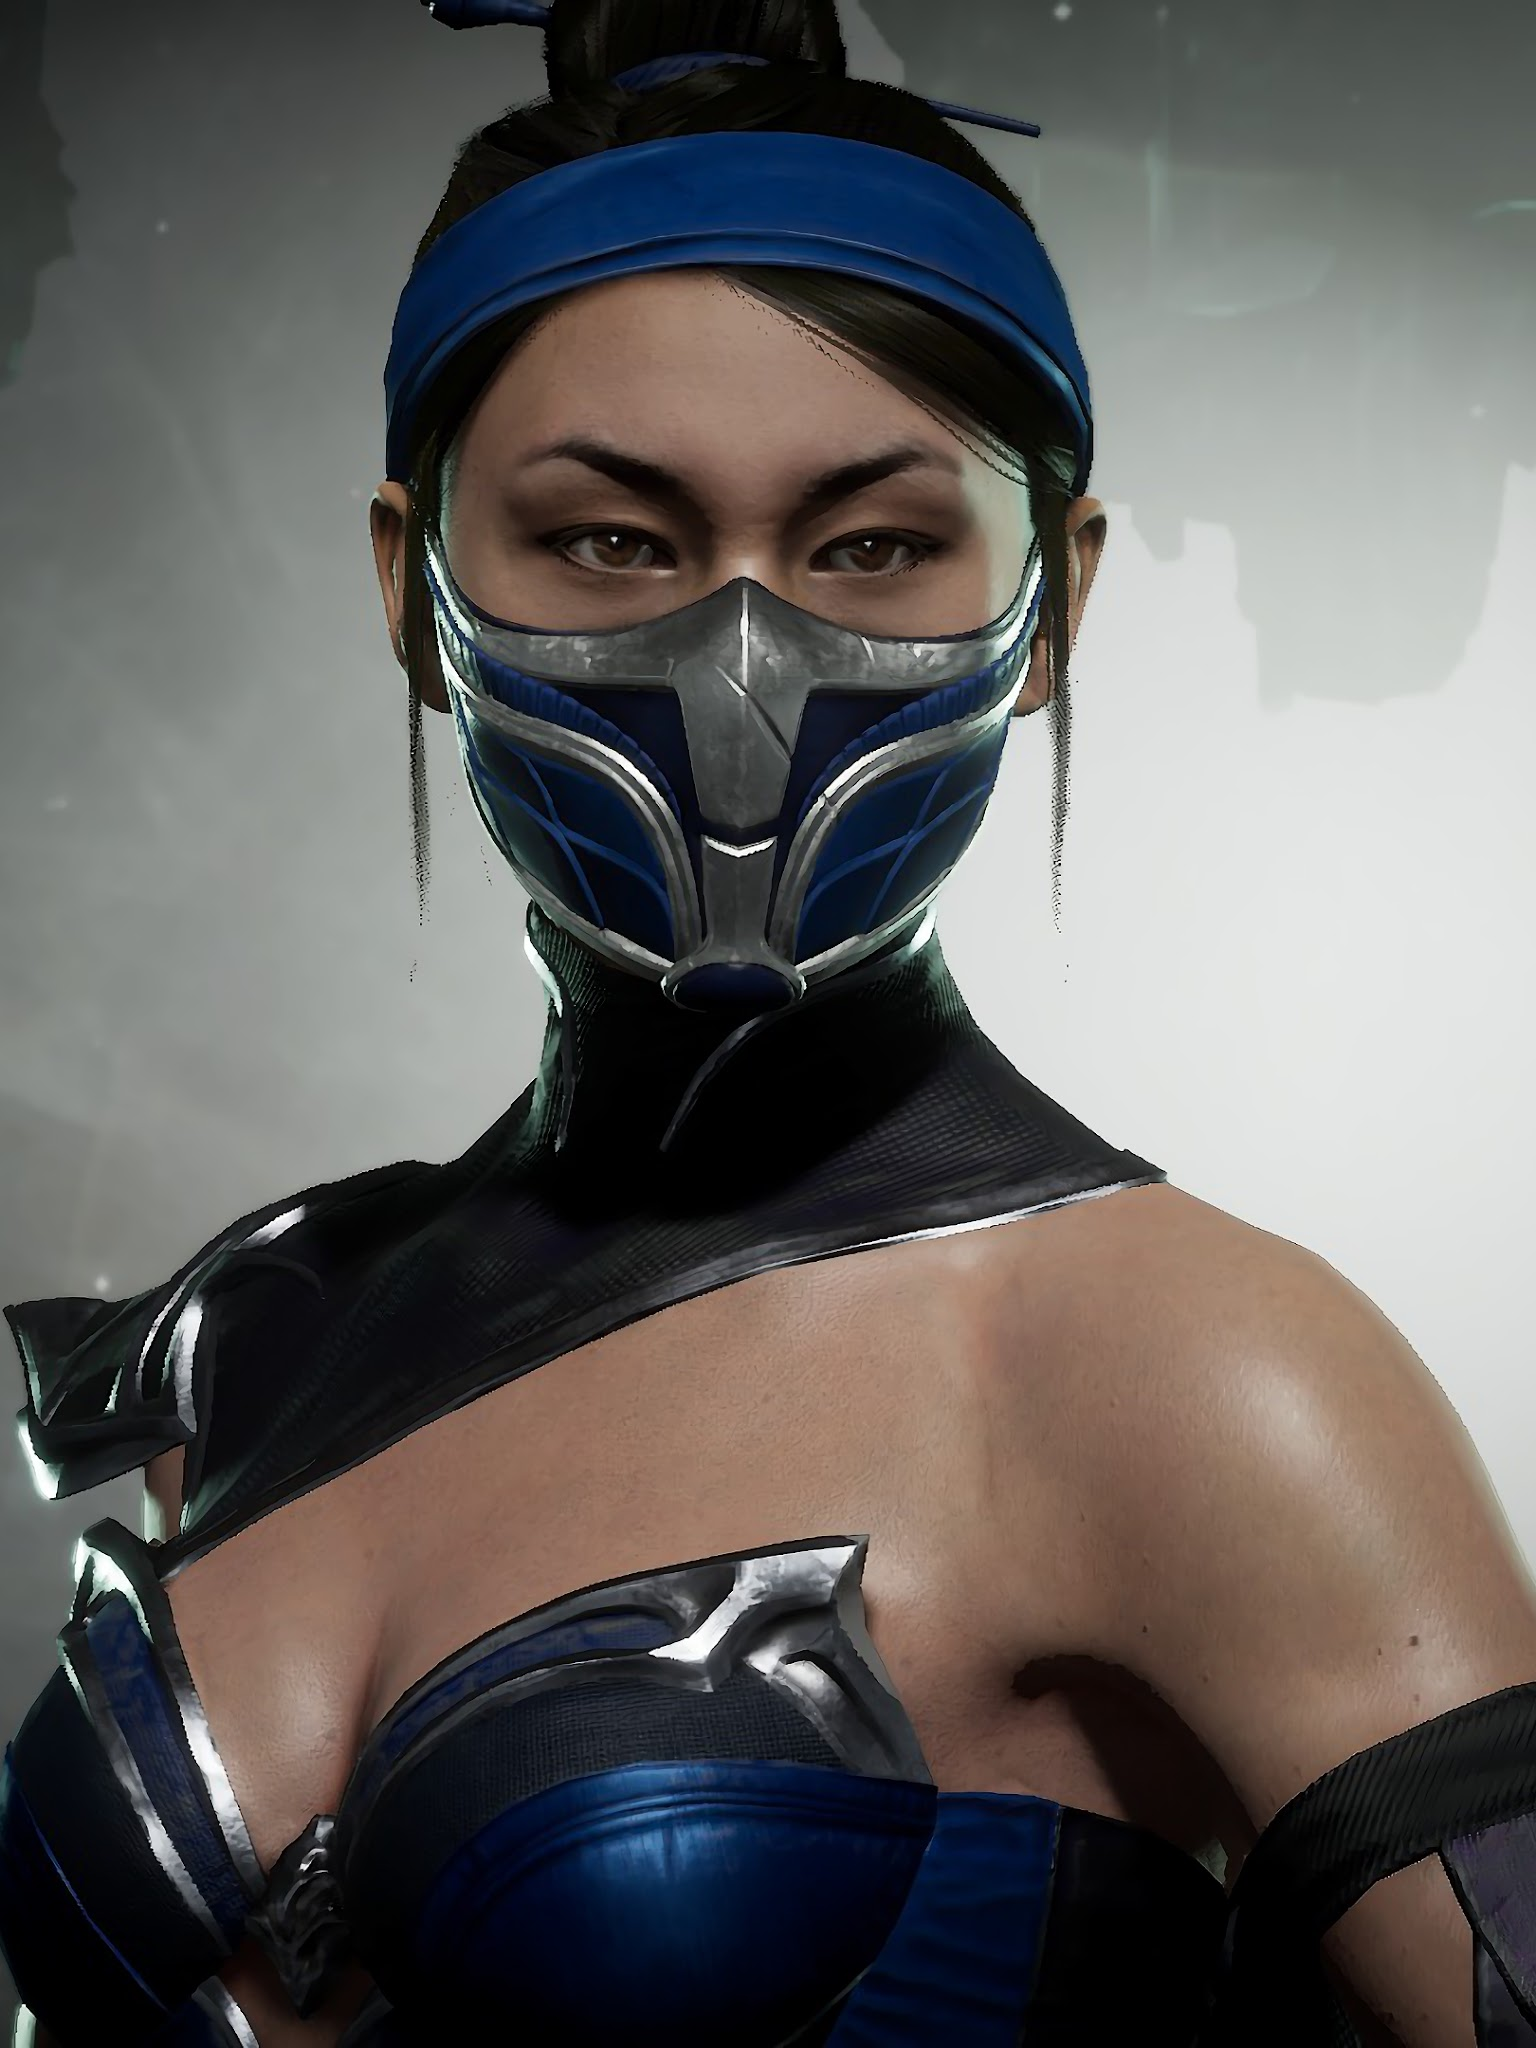 Kitana Mortal Kombat 11 4k Wallpaper 136